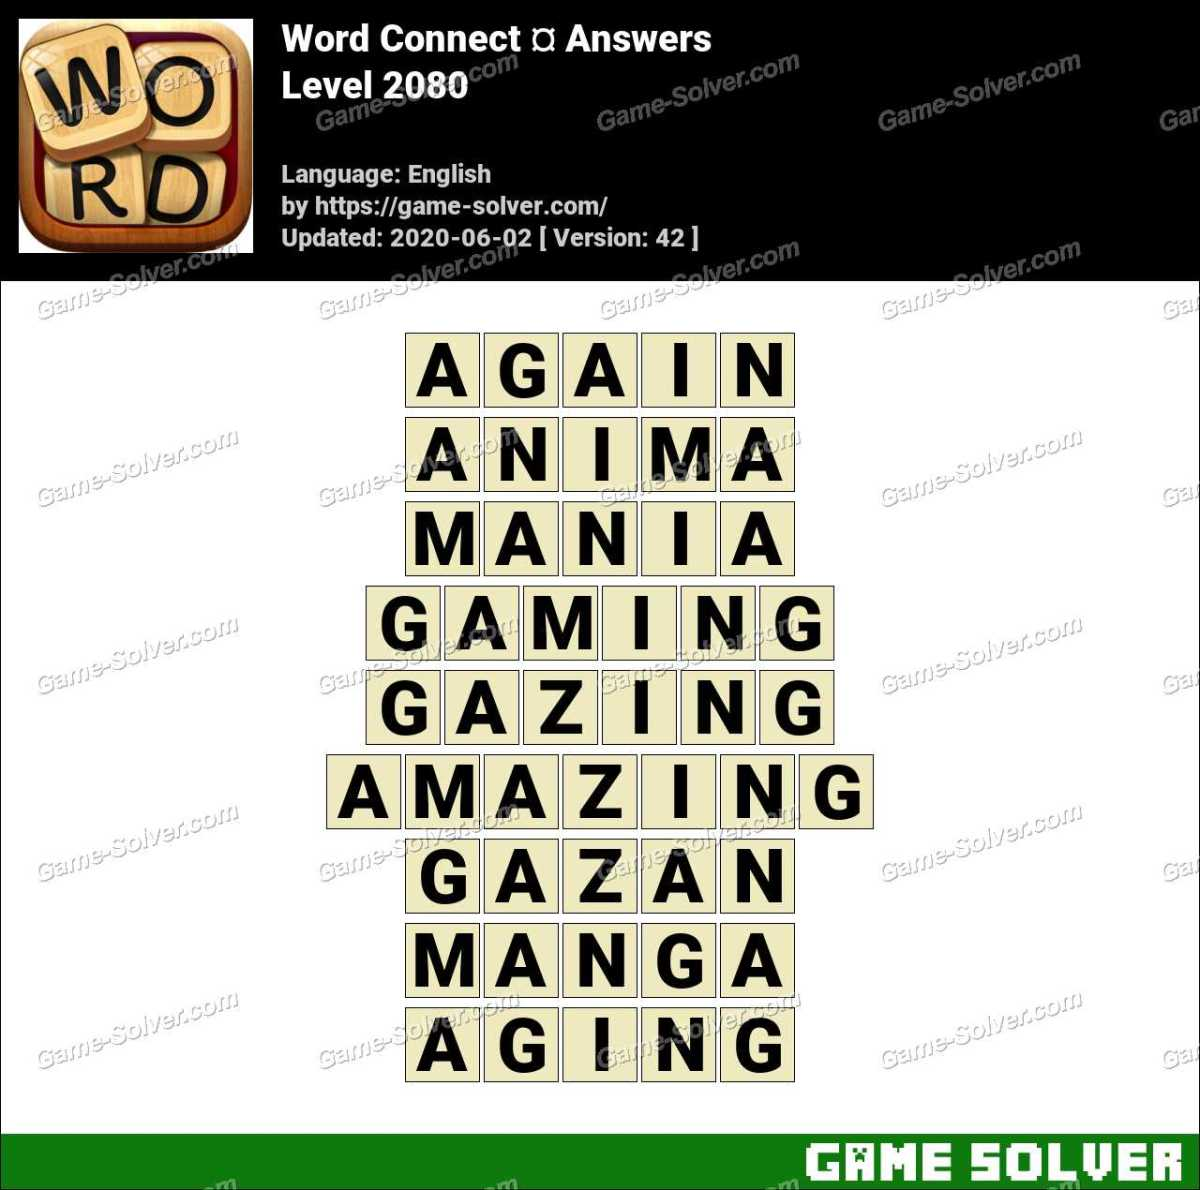 Word Connect Level 2080 Answers